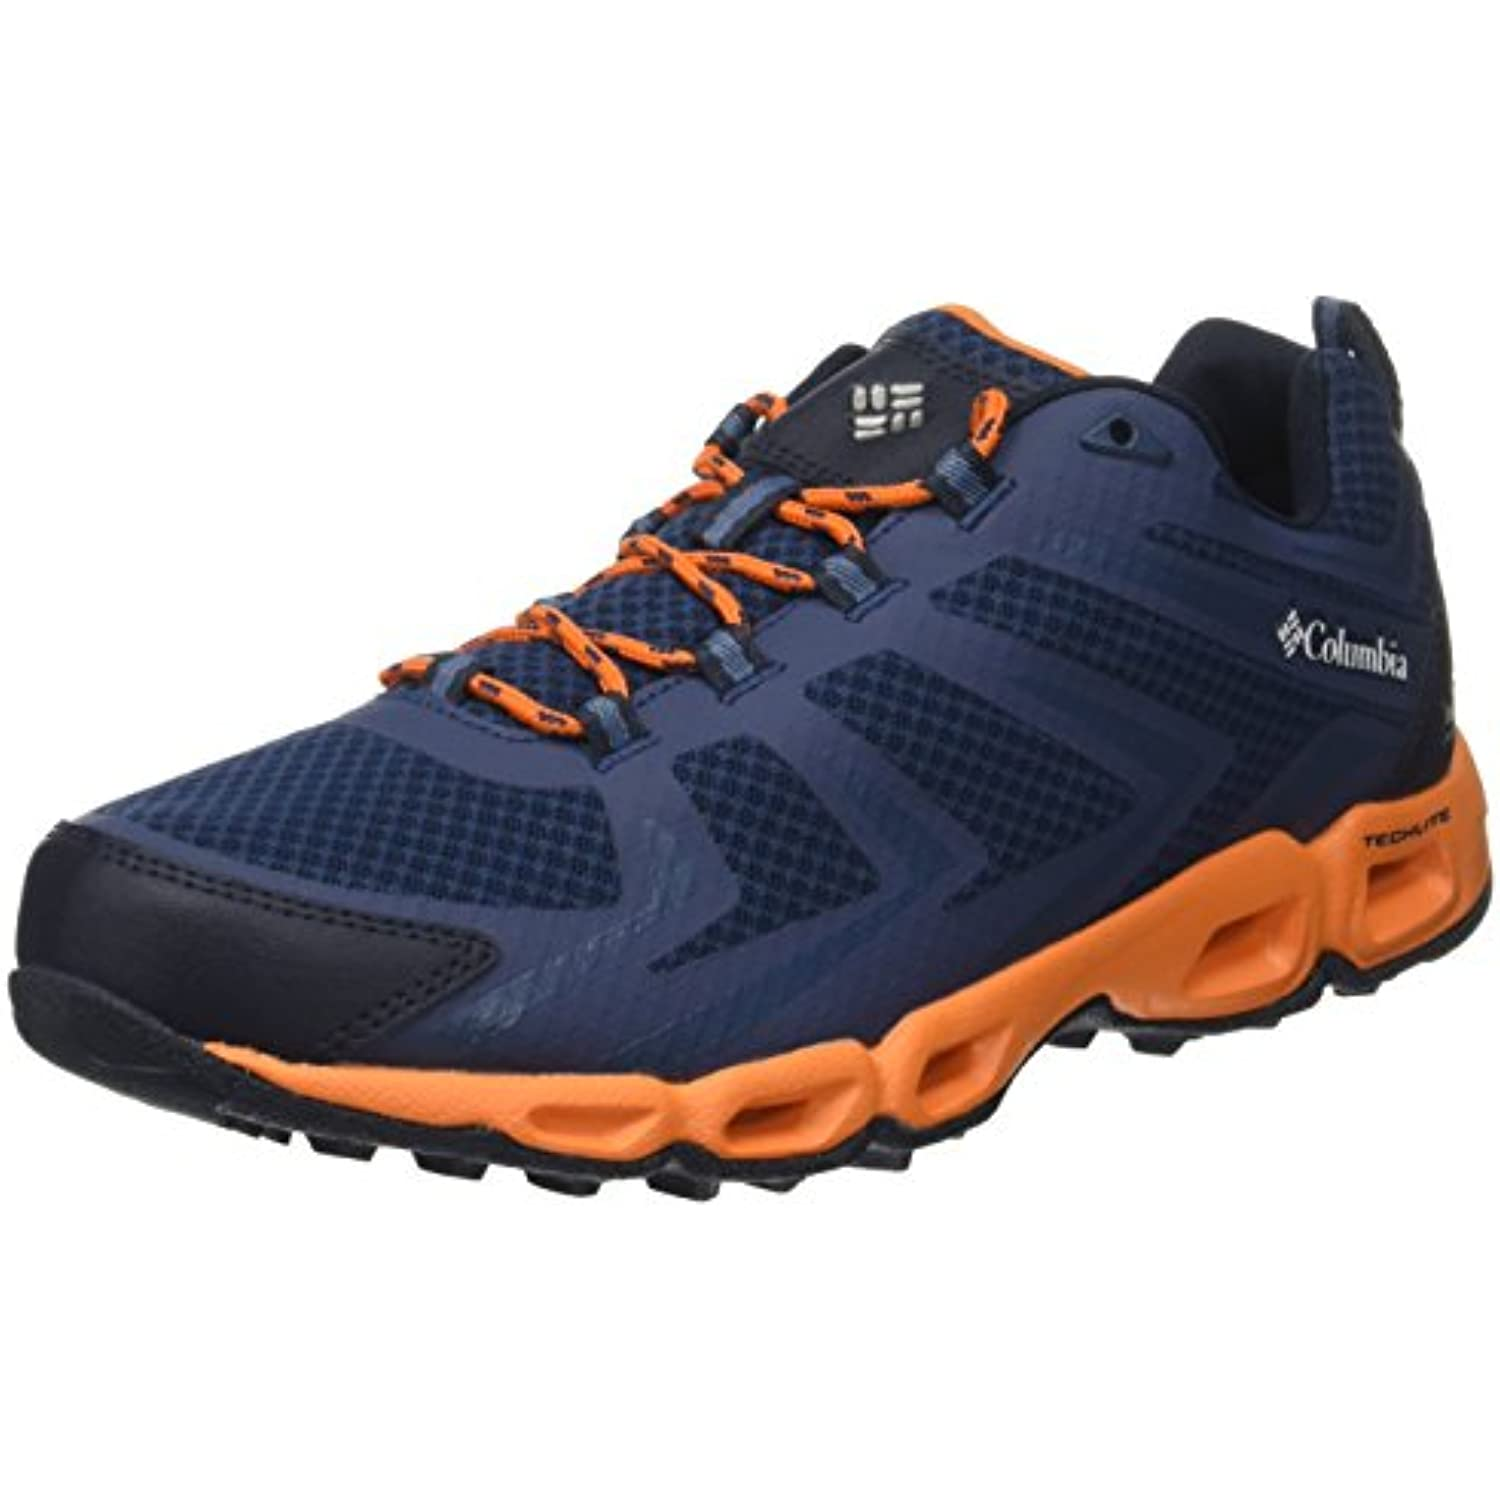 Columbia Ventrailia 3 Low, Scarpe Parent da Escursionismo Uomo  Parent Scarpe 0db5b6